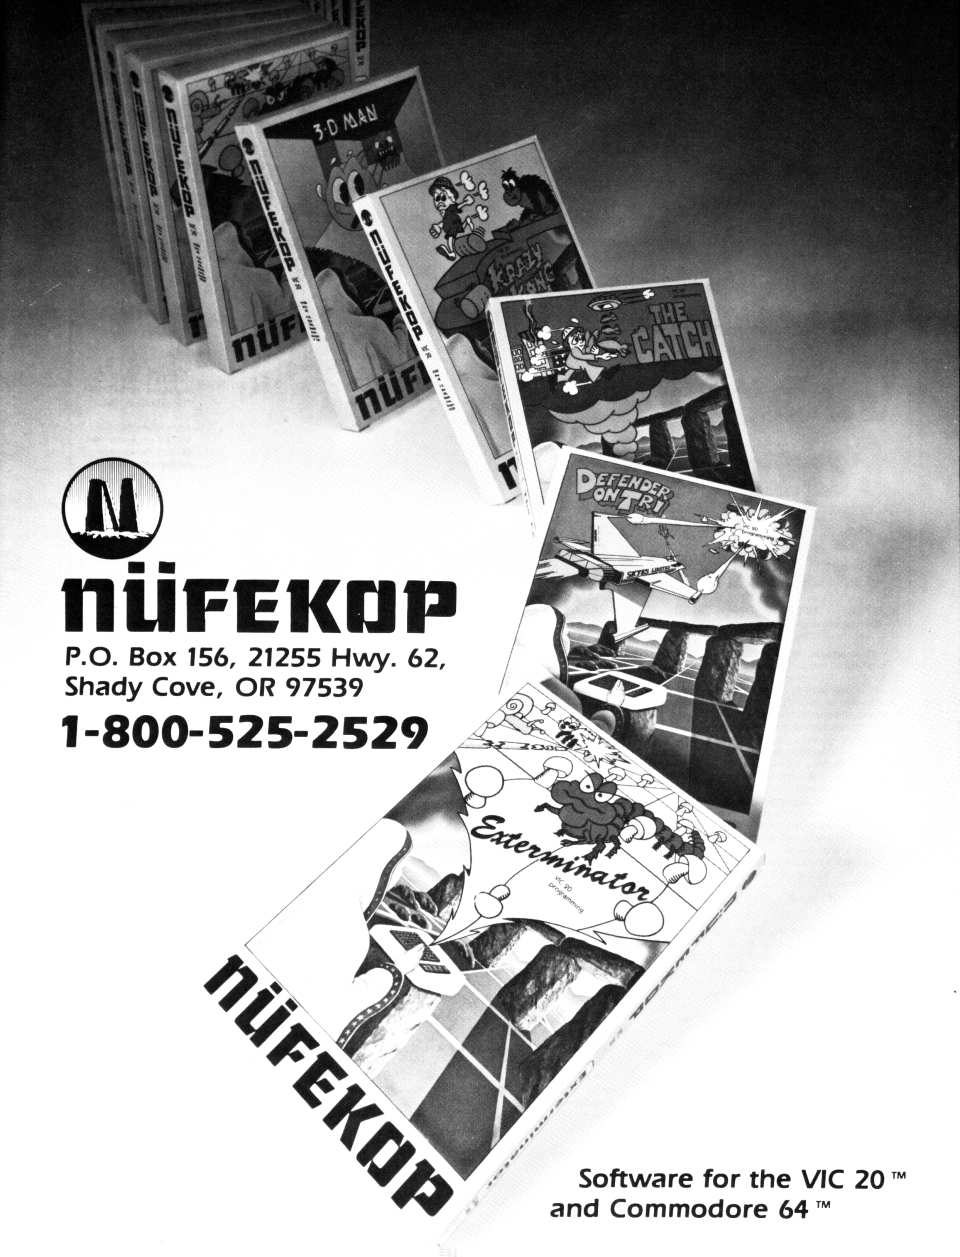 [Advertisement: Nüfekop software for the VIC-20 and Commodore 64]